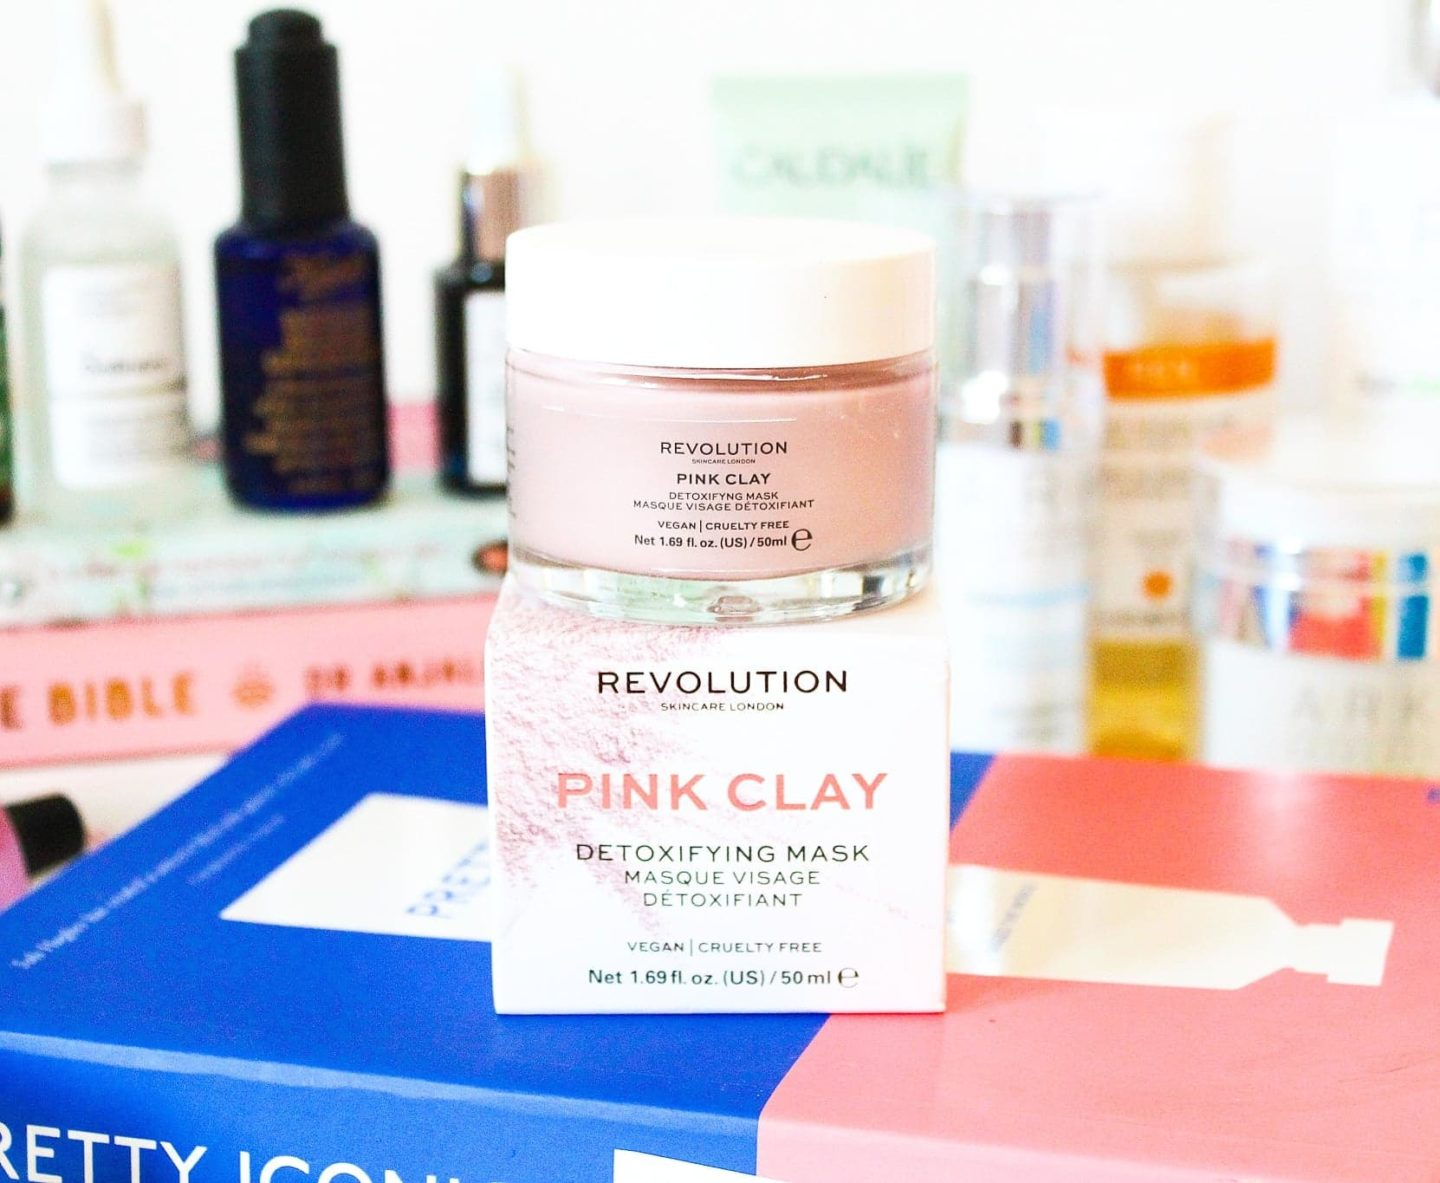 Revolution Pink Clay Detoxifying Mask